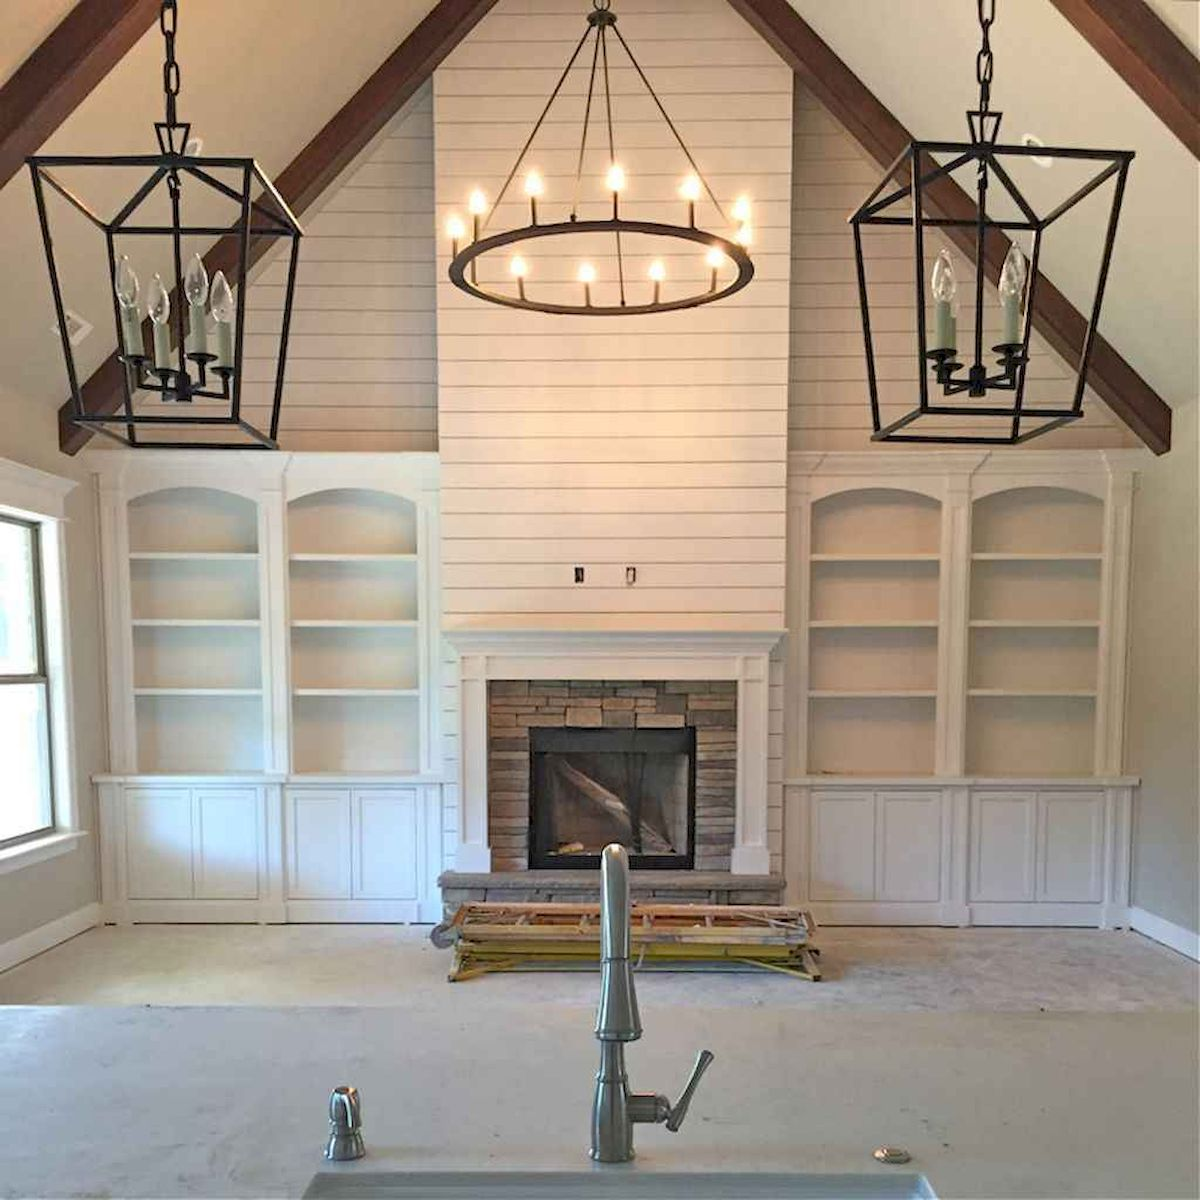 The Best Fireplace Ideas for Farmhouse (12)